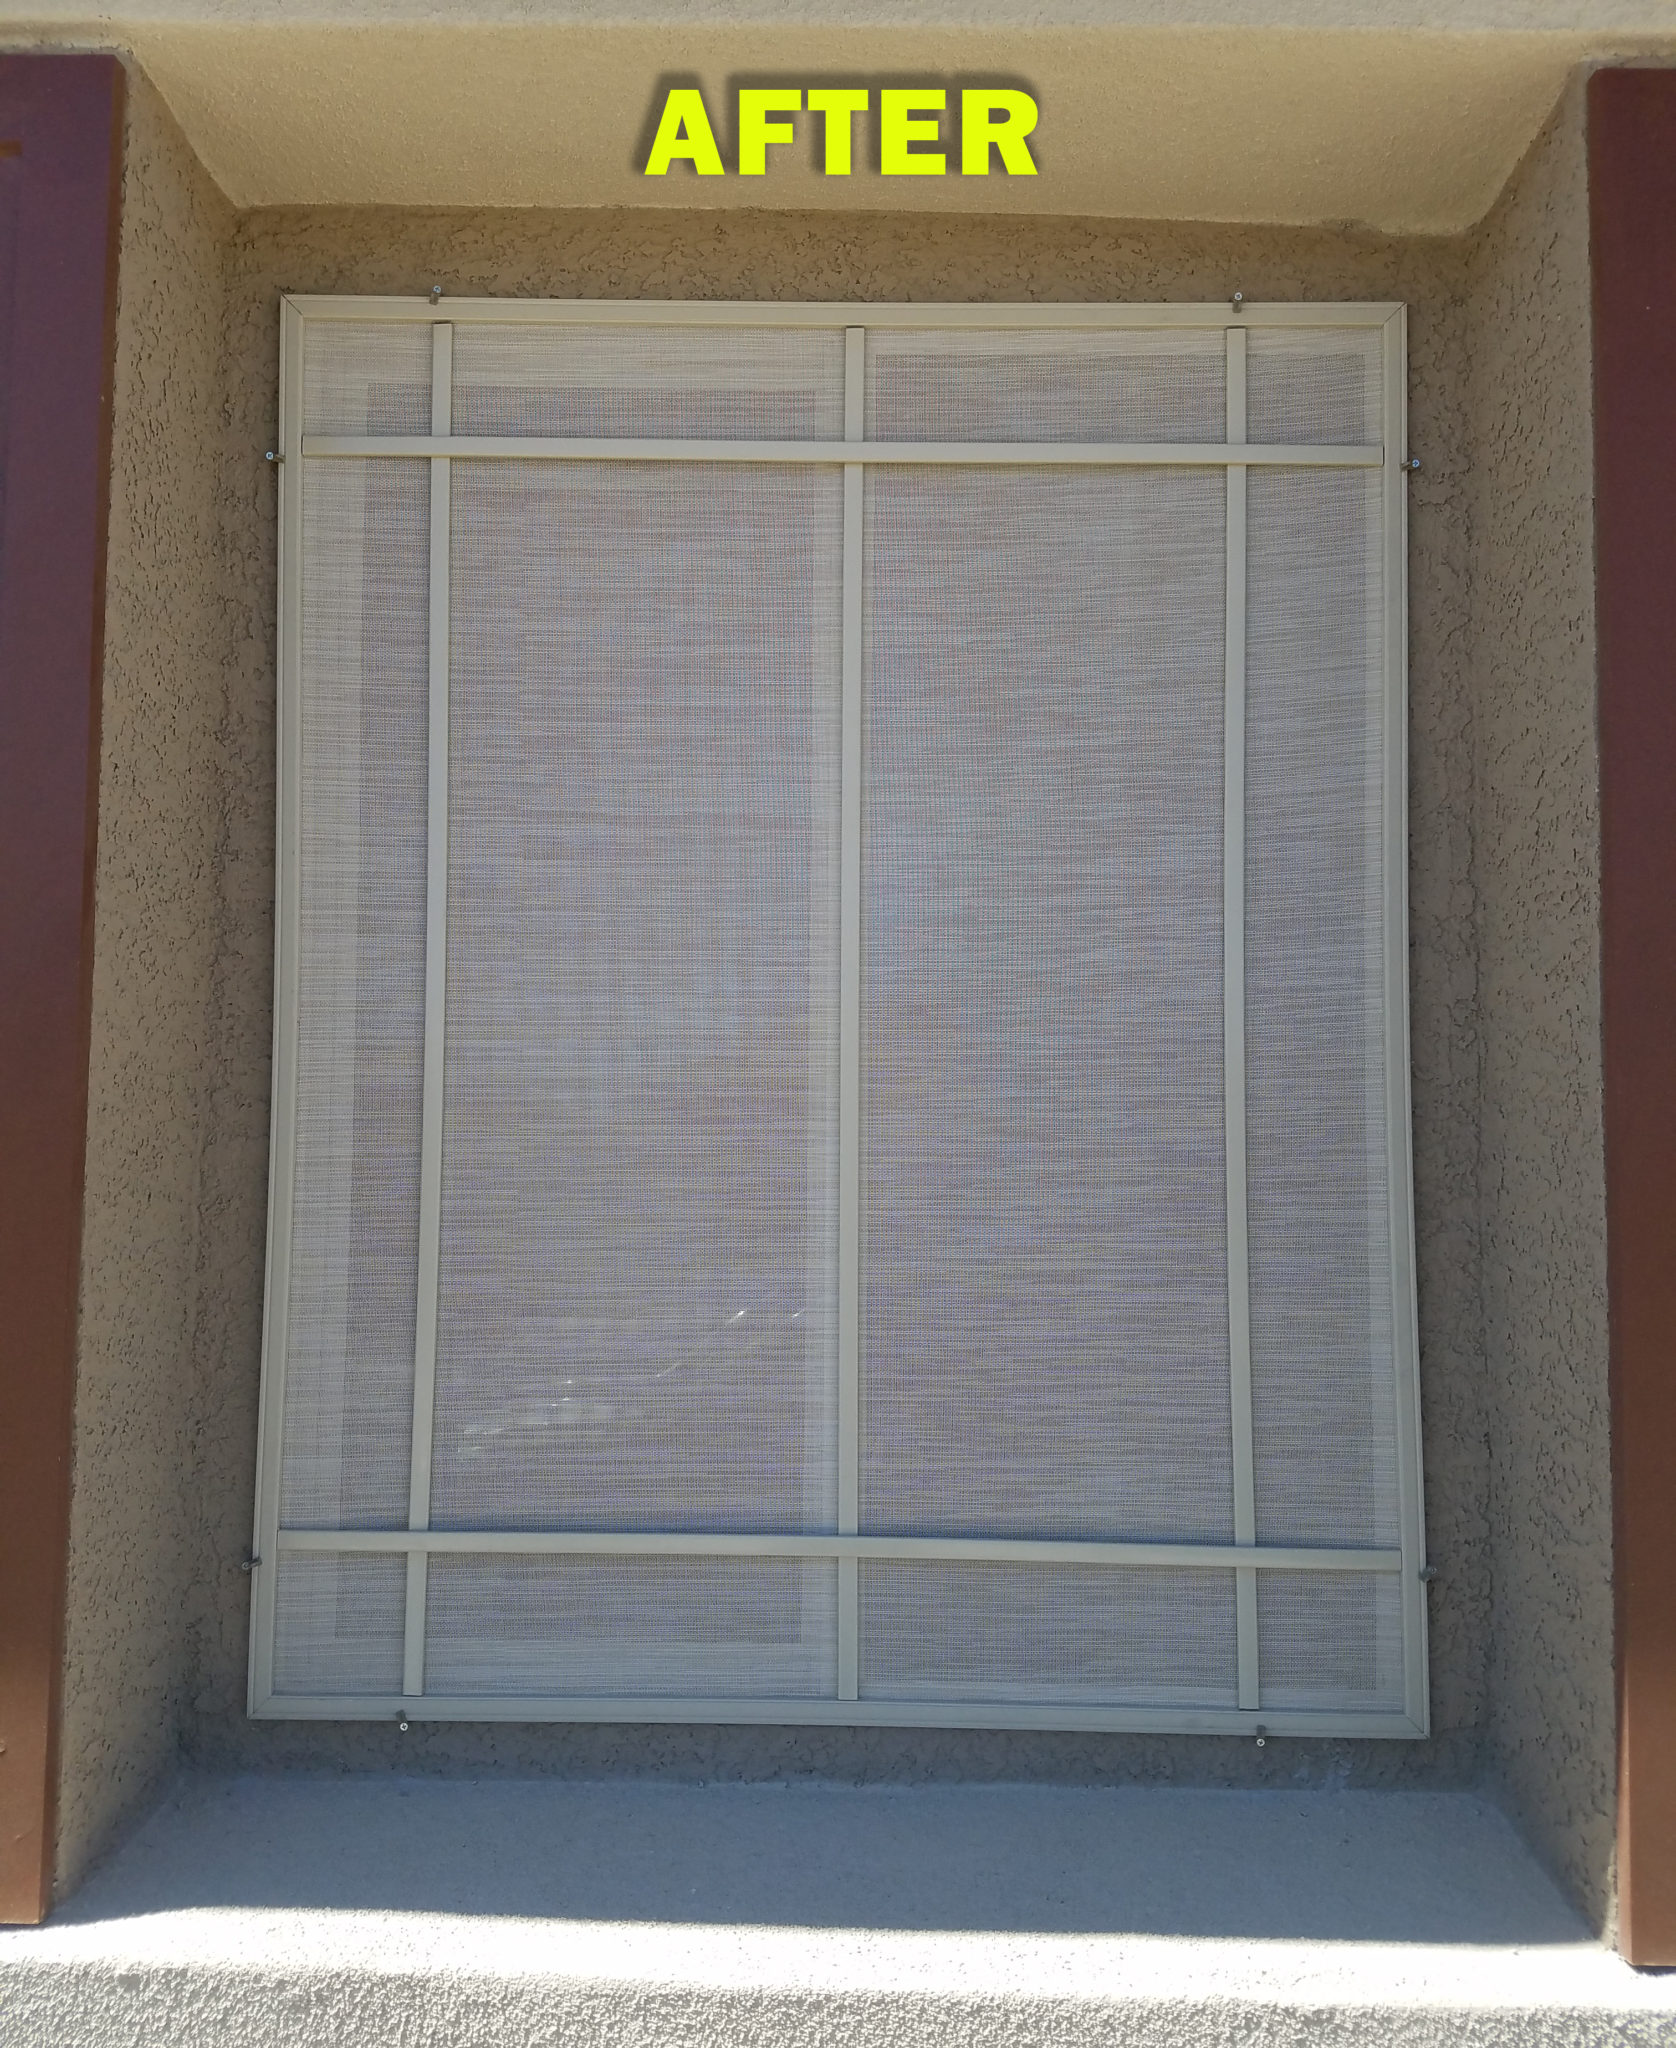 Tall casement window after with decorative trim